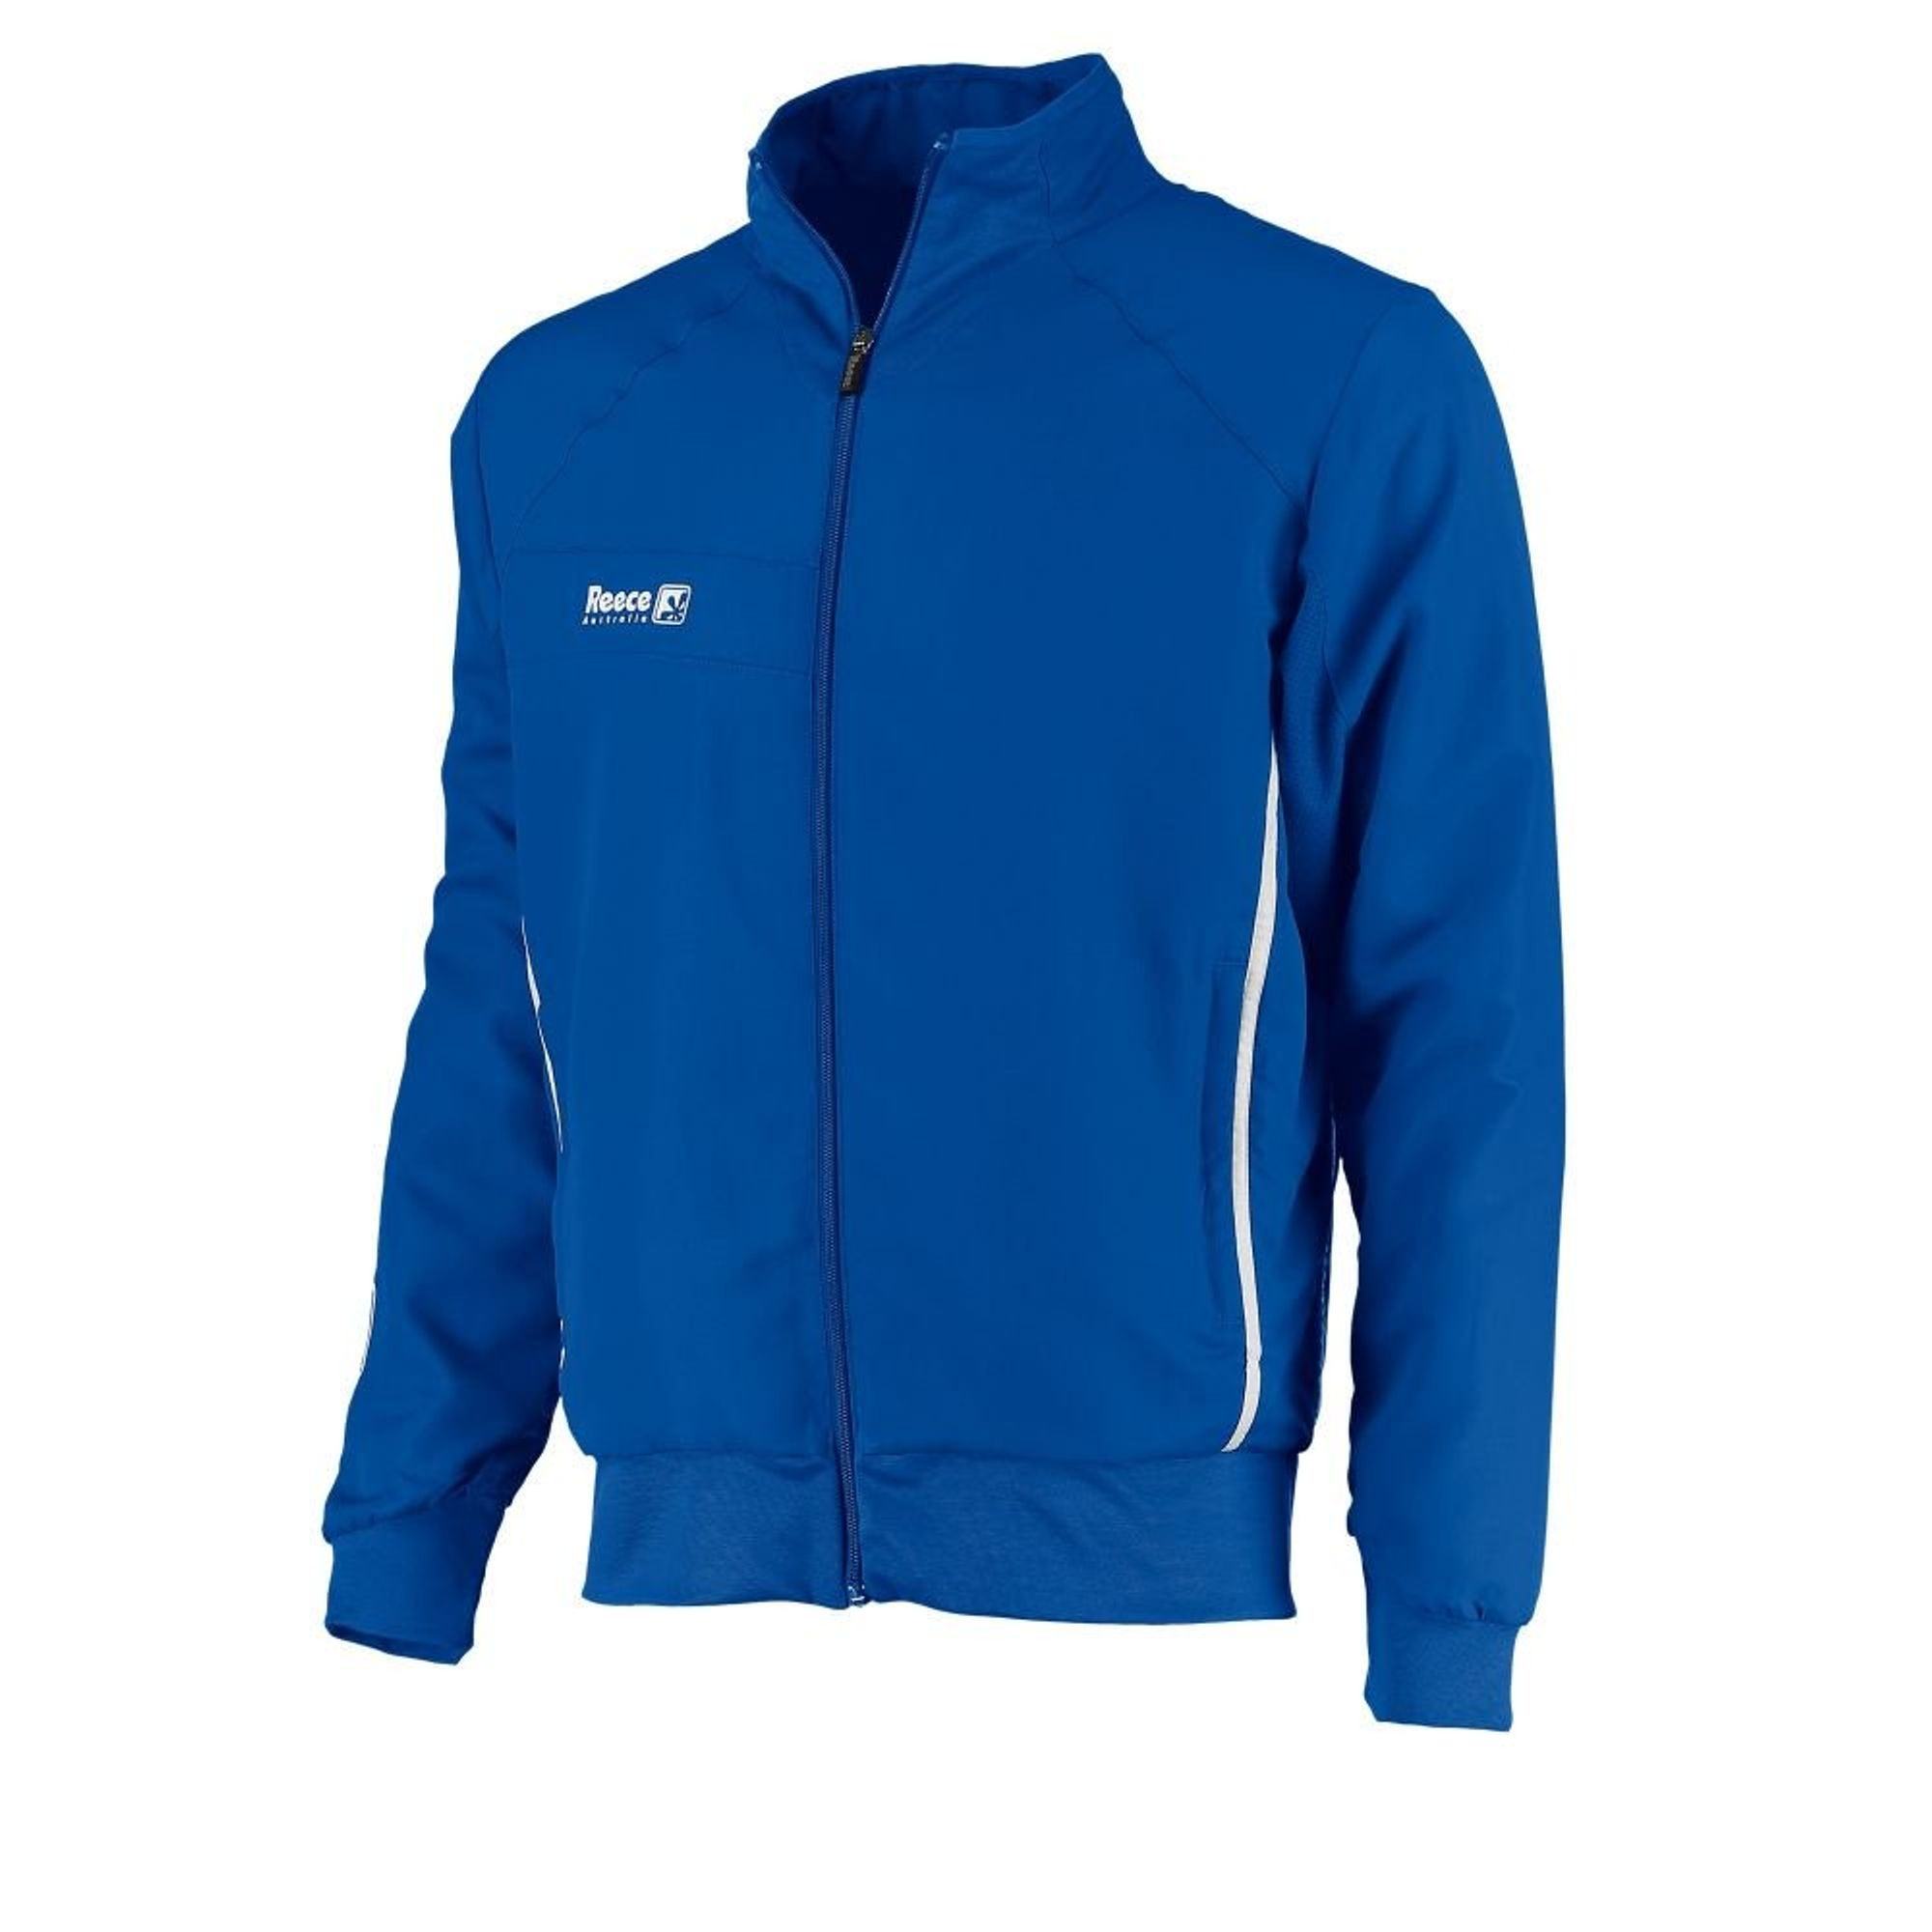 Reece Hockey Core Woven Jacke Unisex - ROYAL